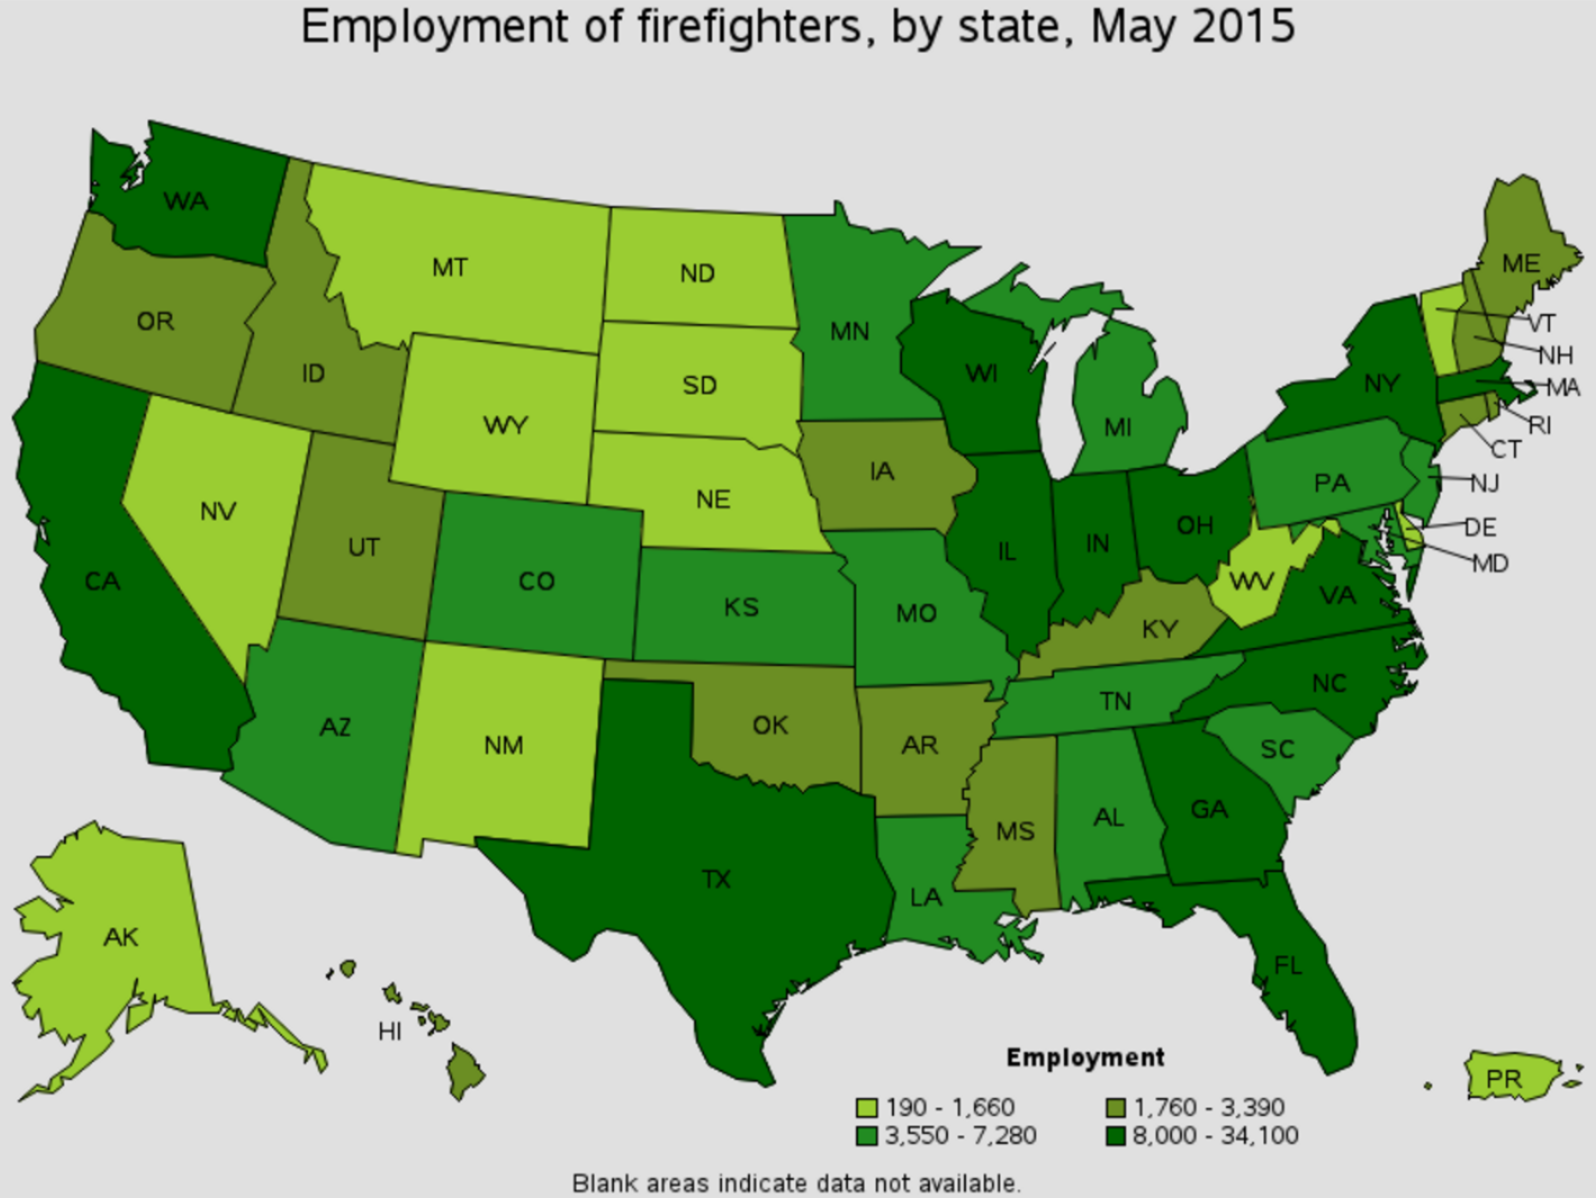 firefighter job outlook by state Woodbine Maryland